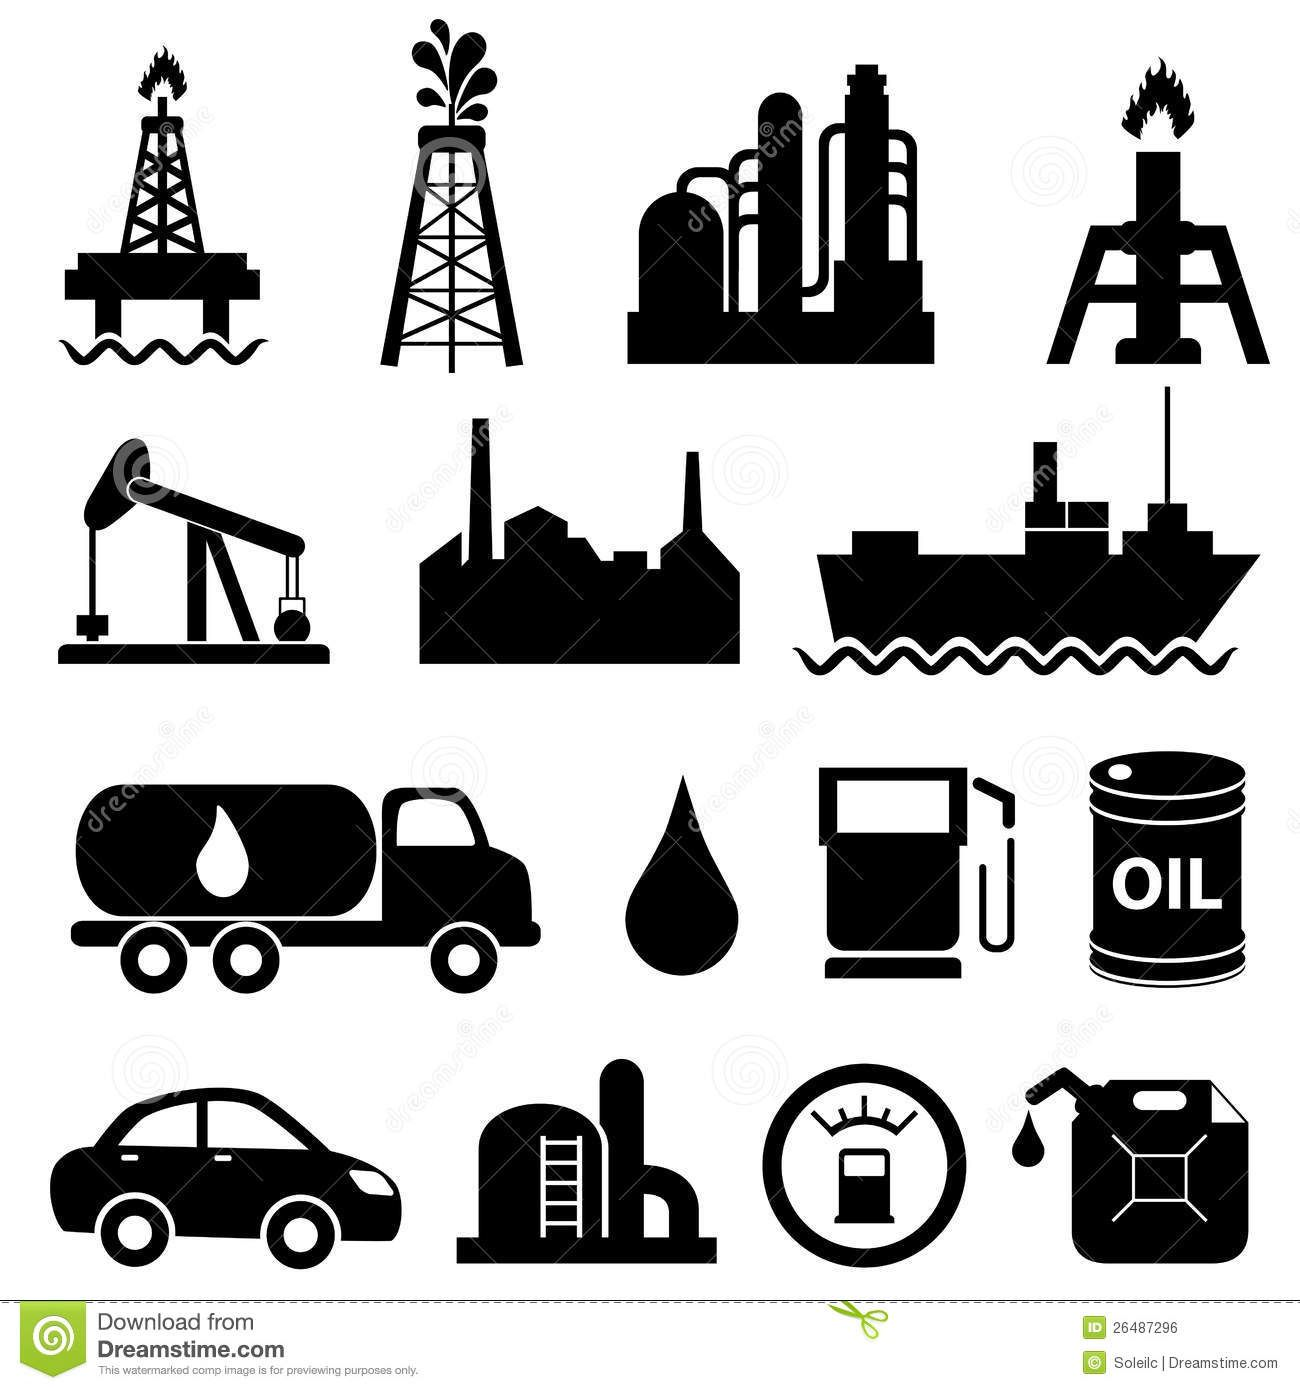 Oil and gas clipart black and white clip art library download INDUSTRY ENERGY Oil Industry Icon Set Royalty Free Stock Image ... clip art library download